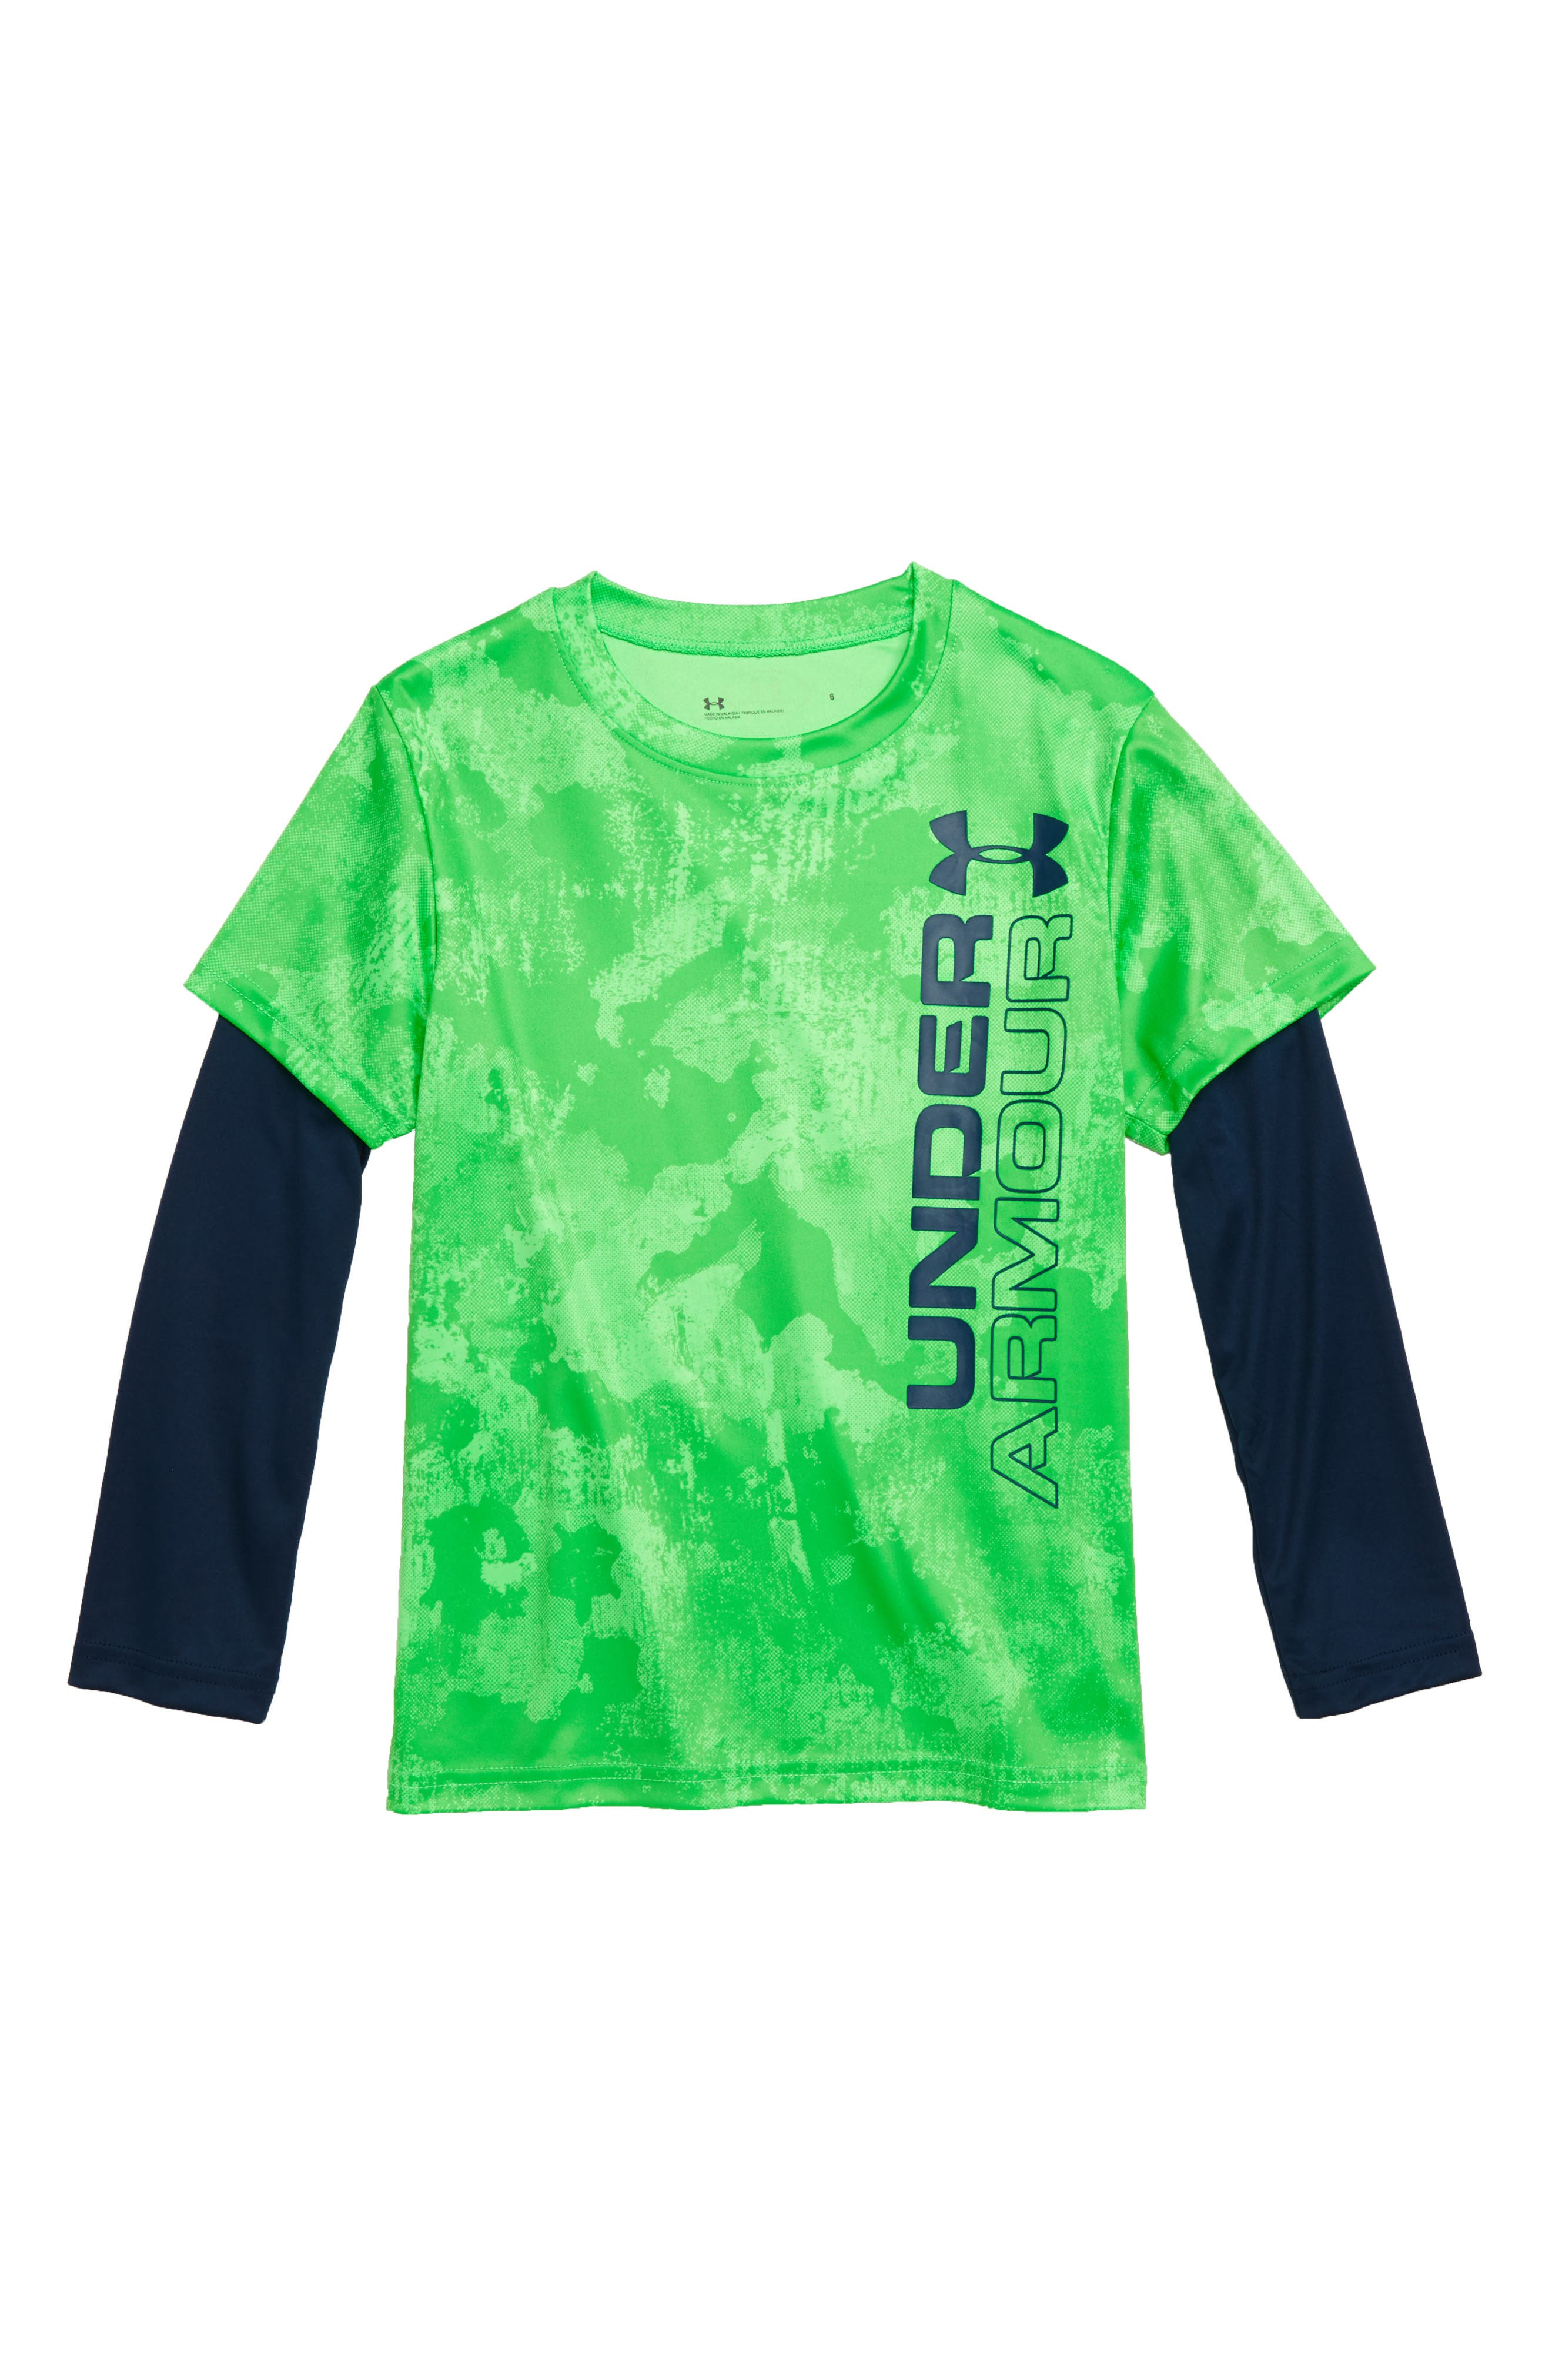 Boys Under Armour Stacked Layered Shirt